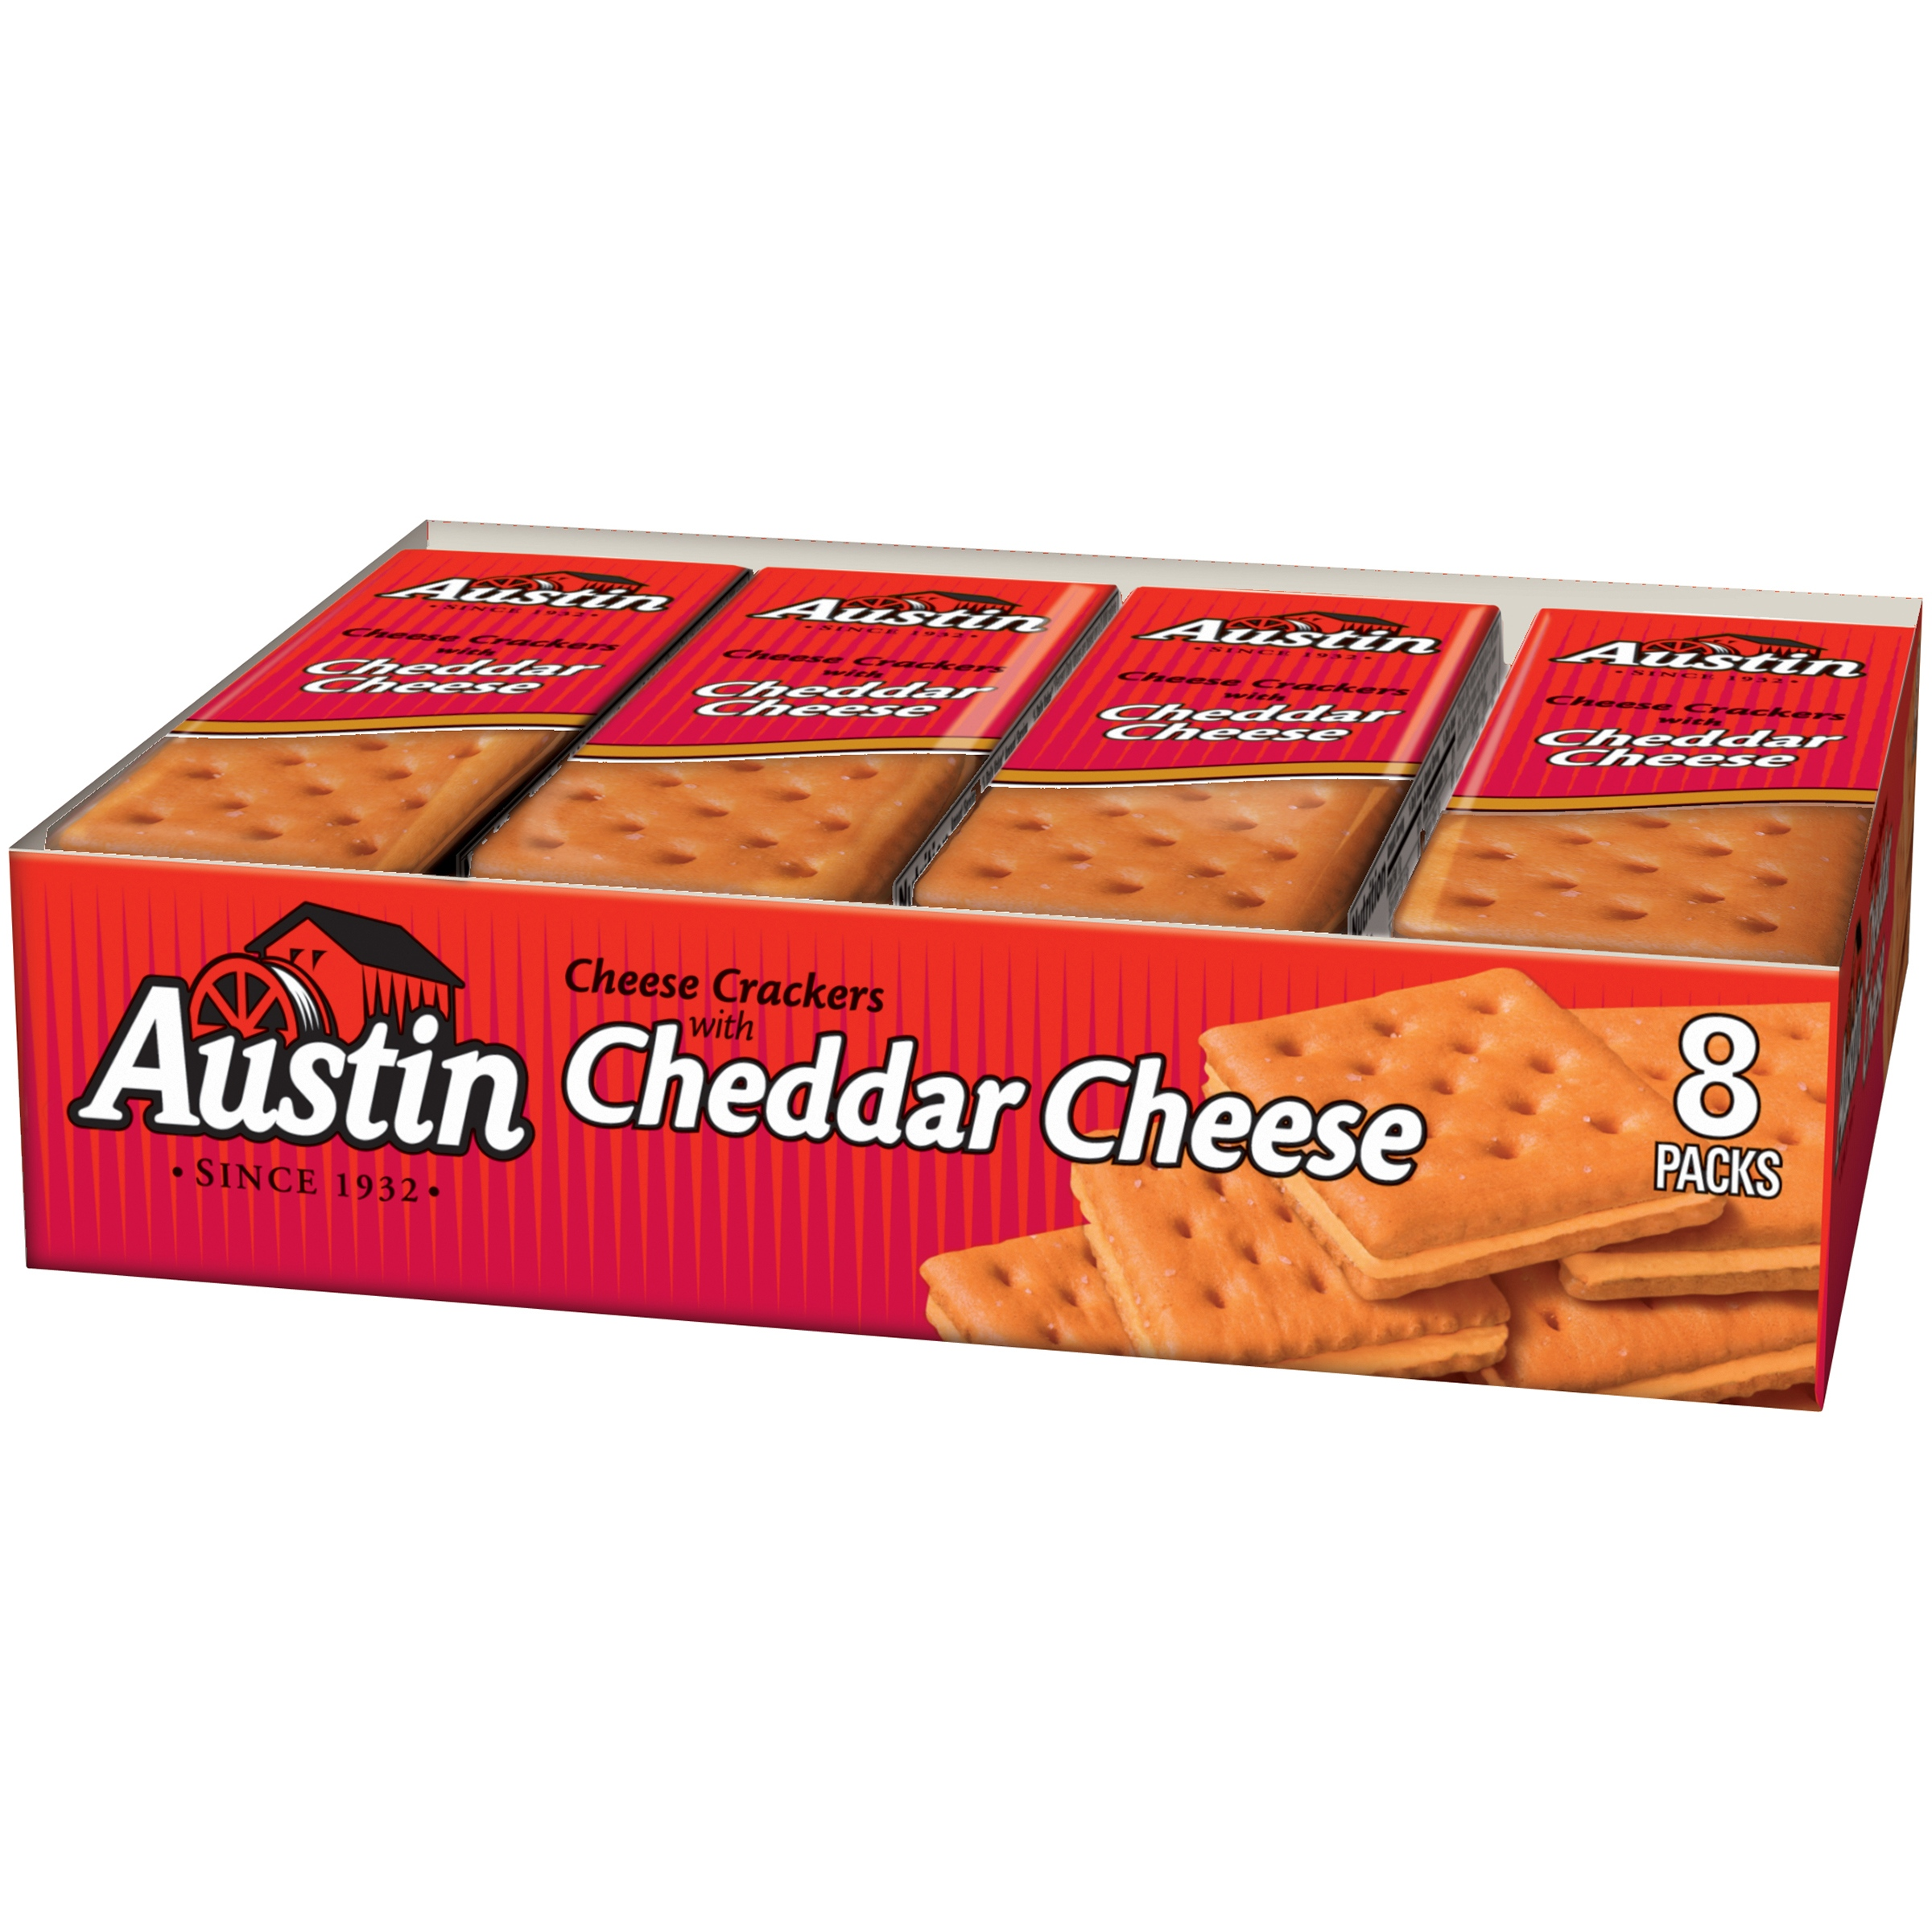 Austin Cheese Crackers with Cheddar Cheese, 1.38 oz 8 count by Kellogg Sales Co.